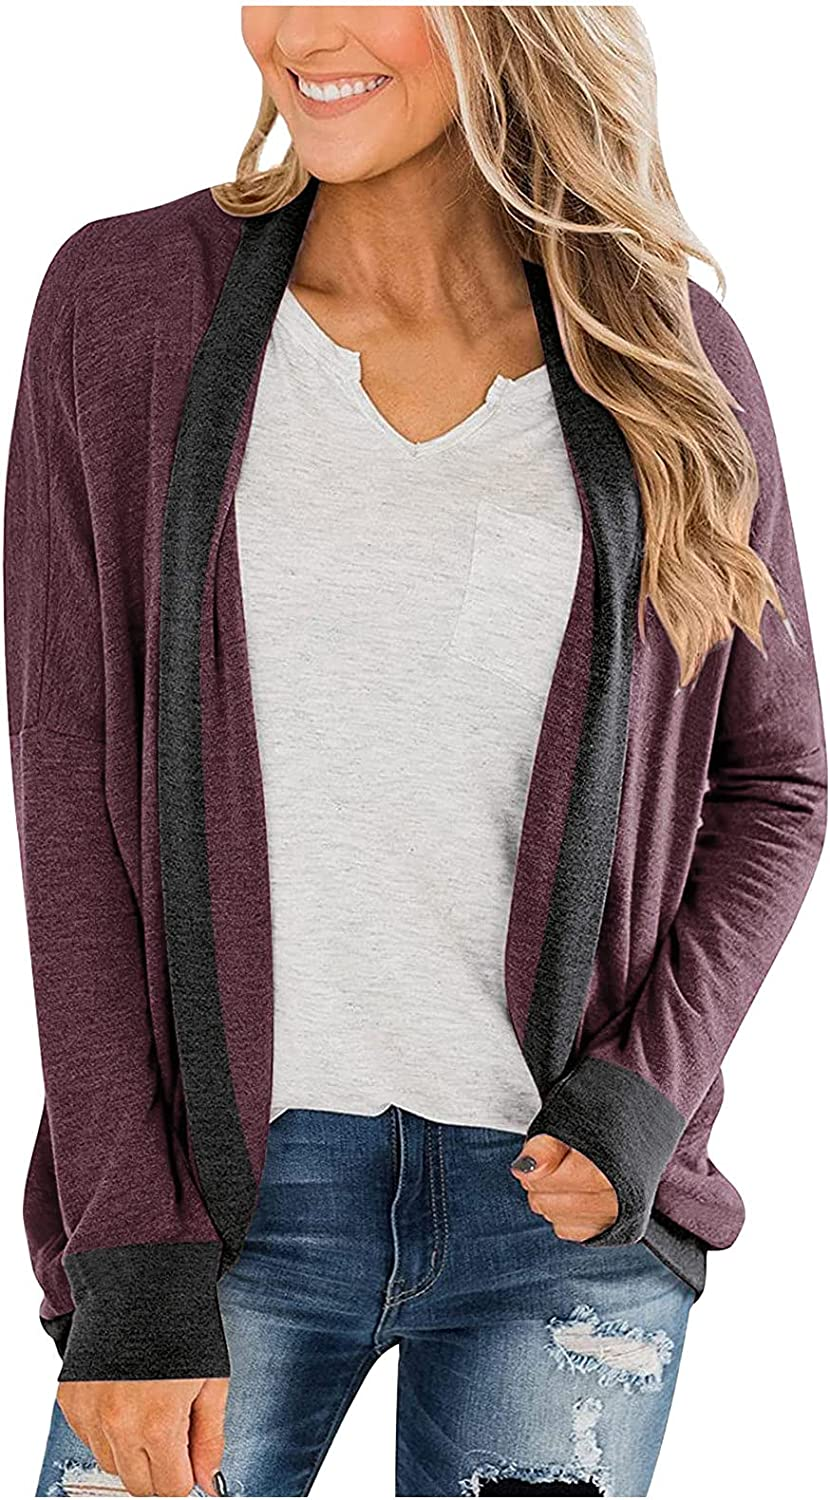 Womens Kimono Open Front Cardigans Shawl Batwing Col Sleeve Special sale item Long Max 89% OFF